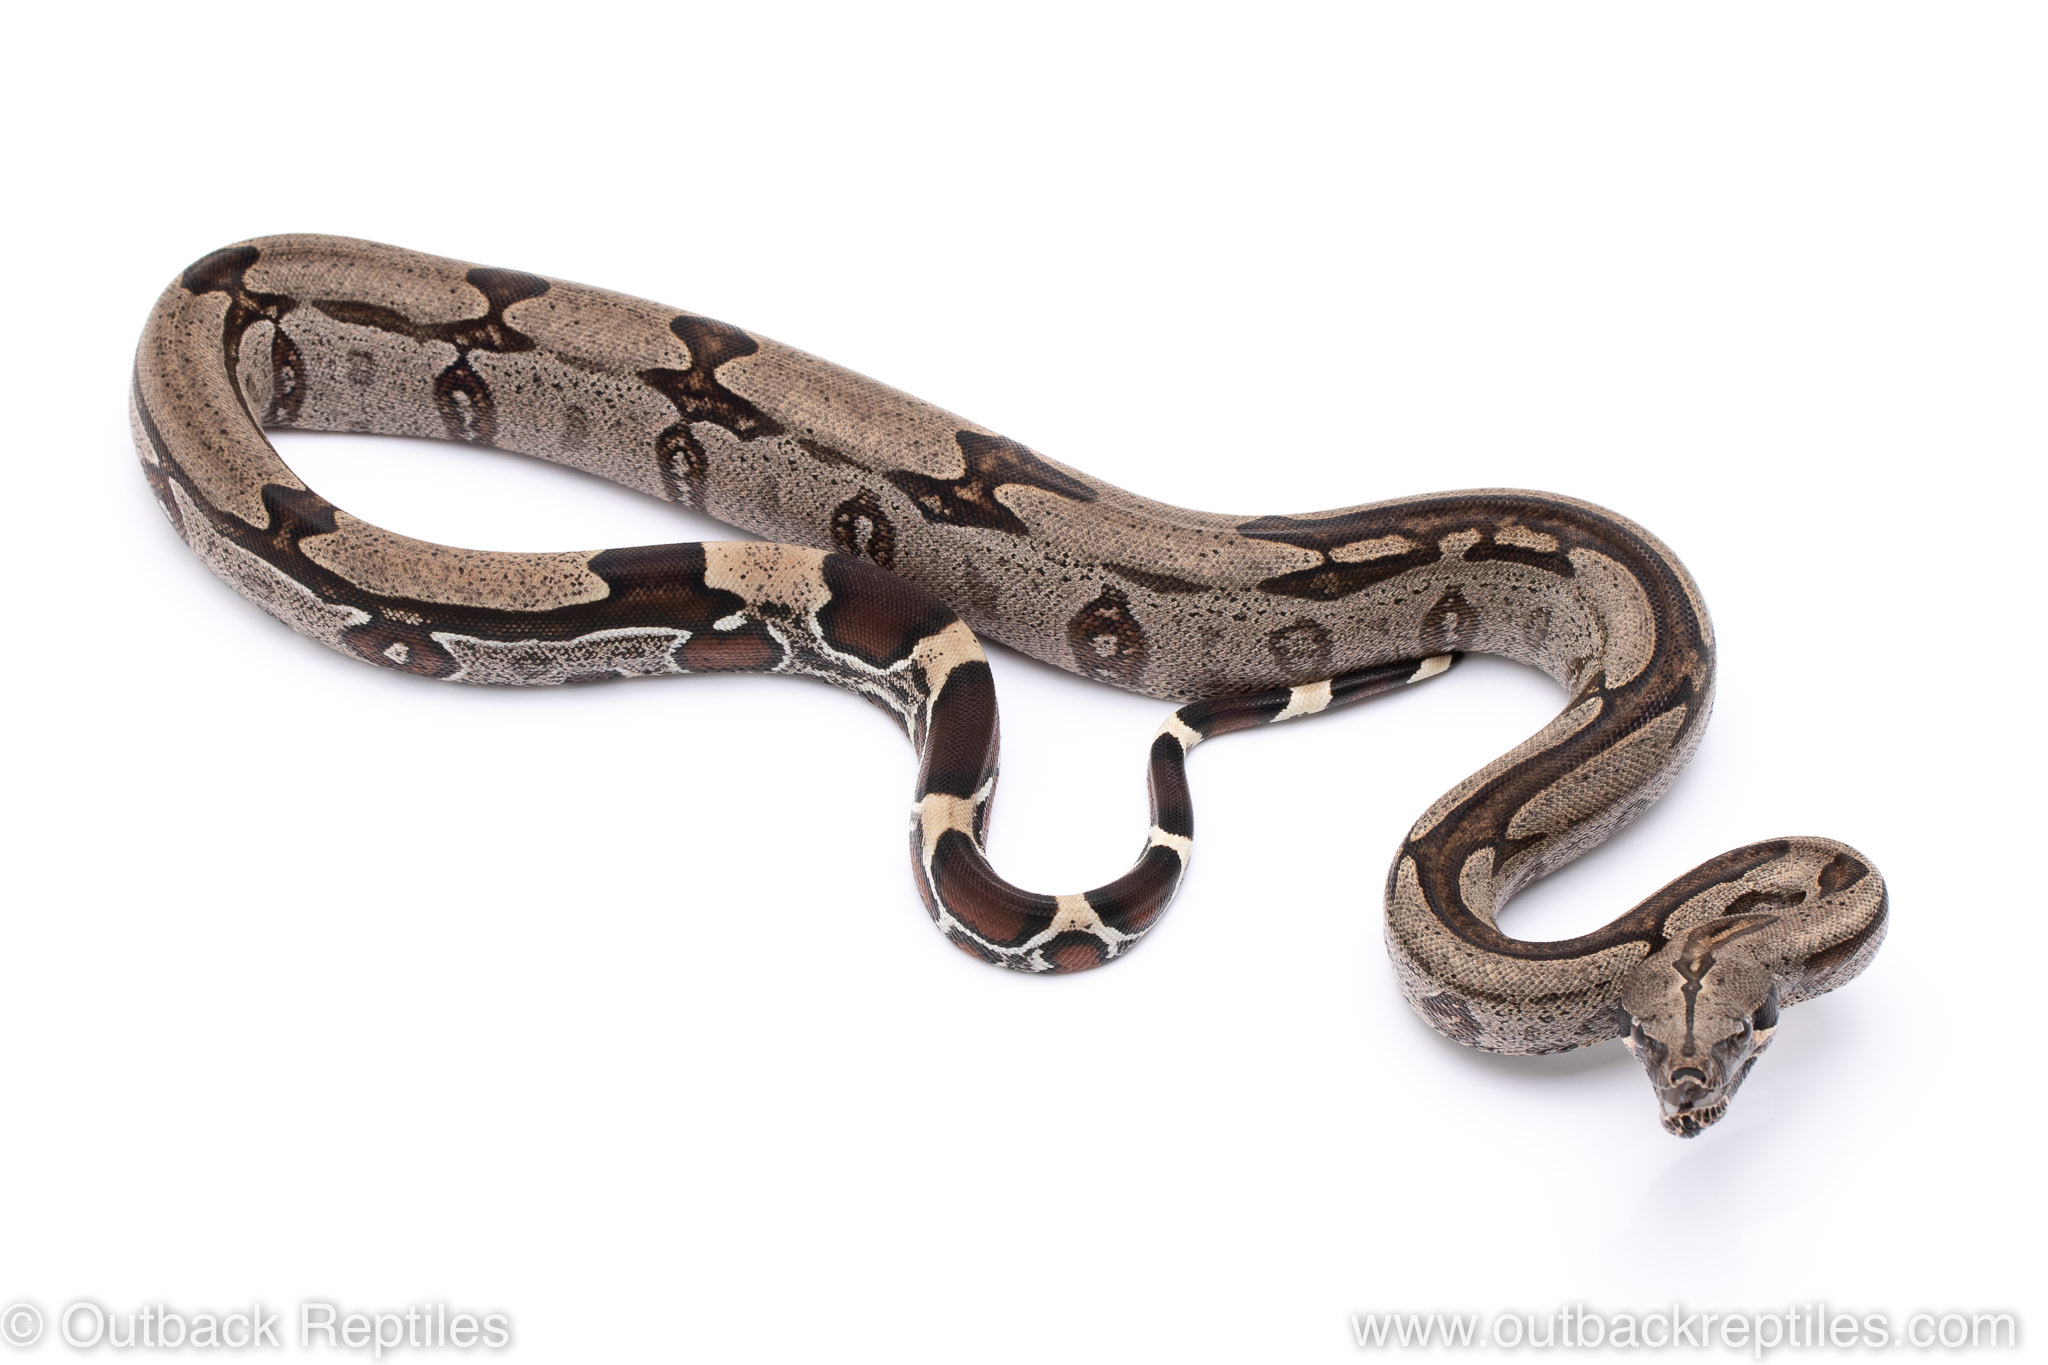 Guyana Redtail Boa constrictor for sale